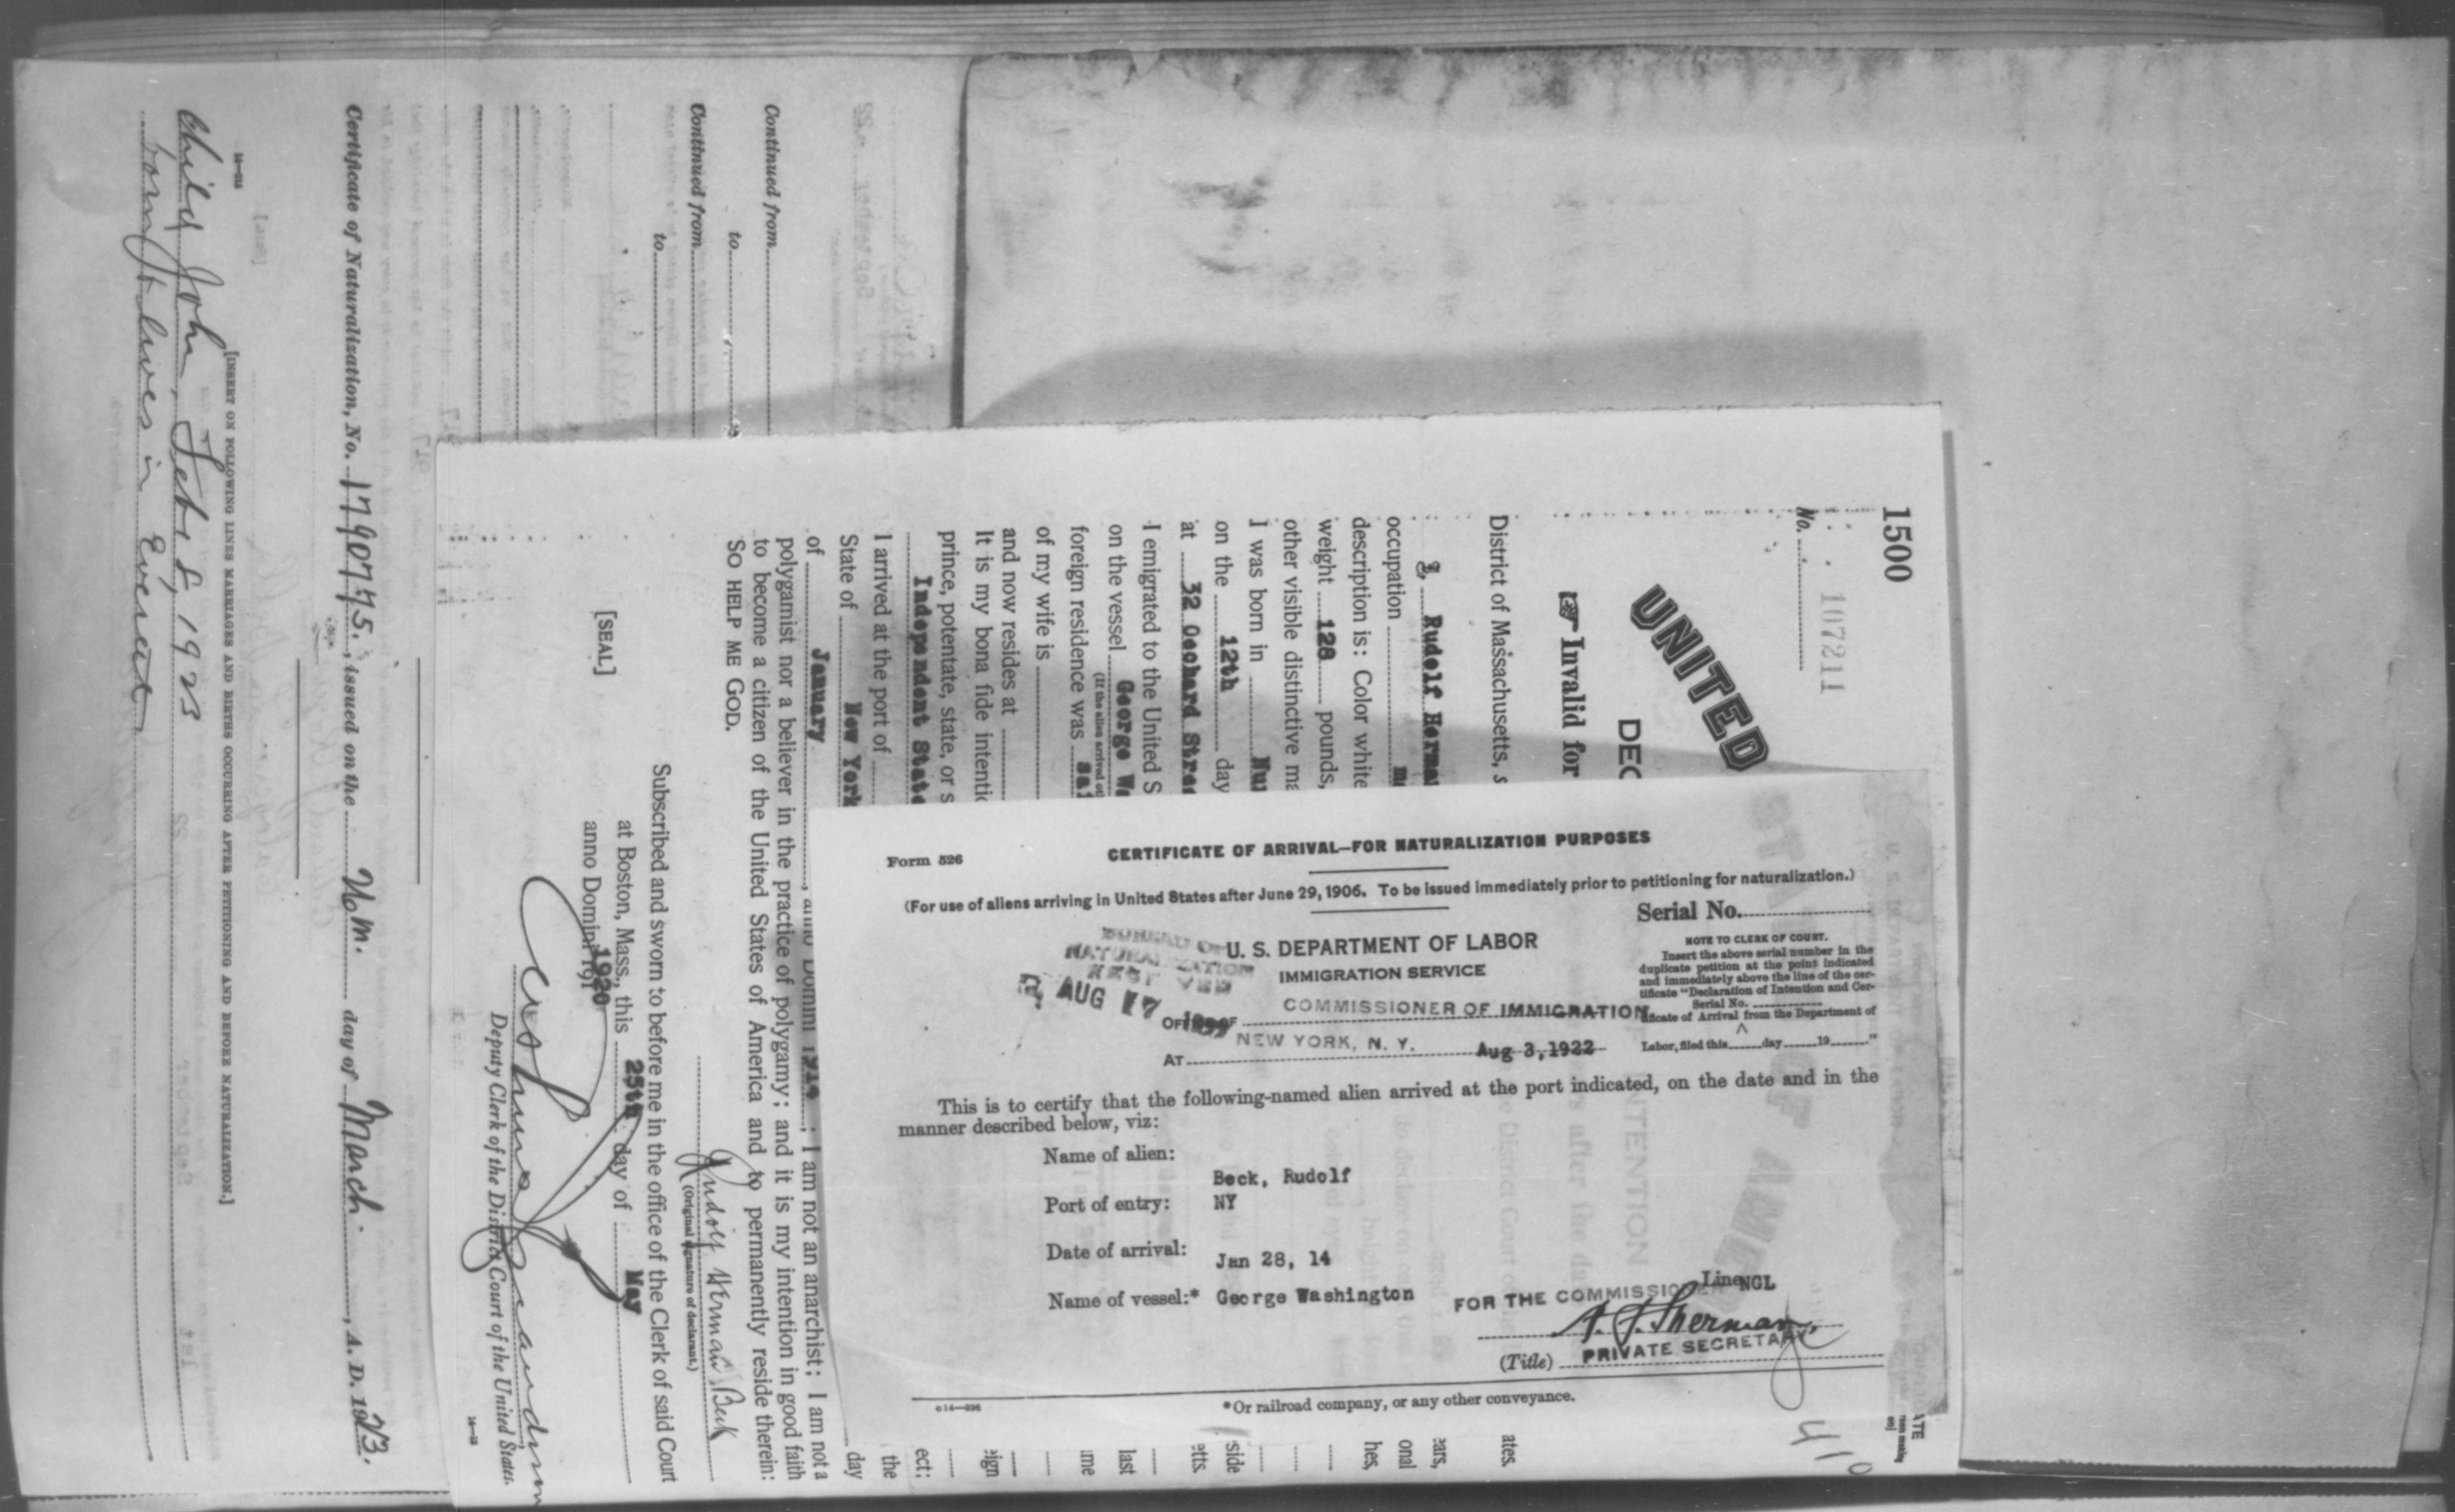 Petition for Naturalization of Beck, Rudolf